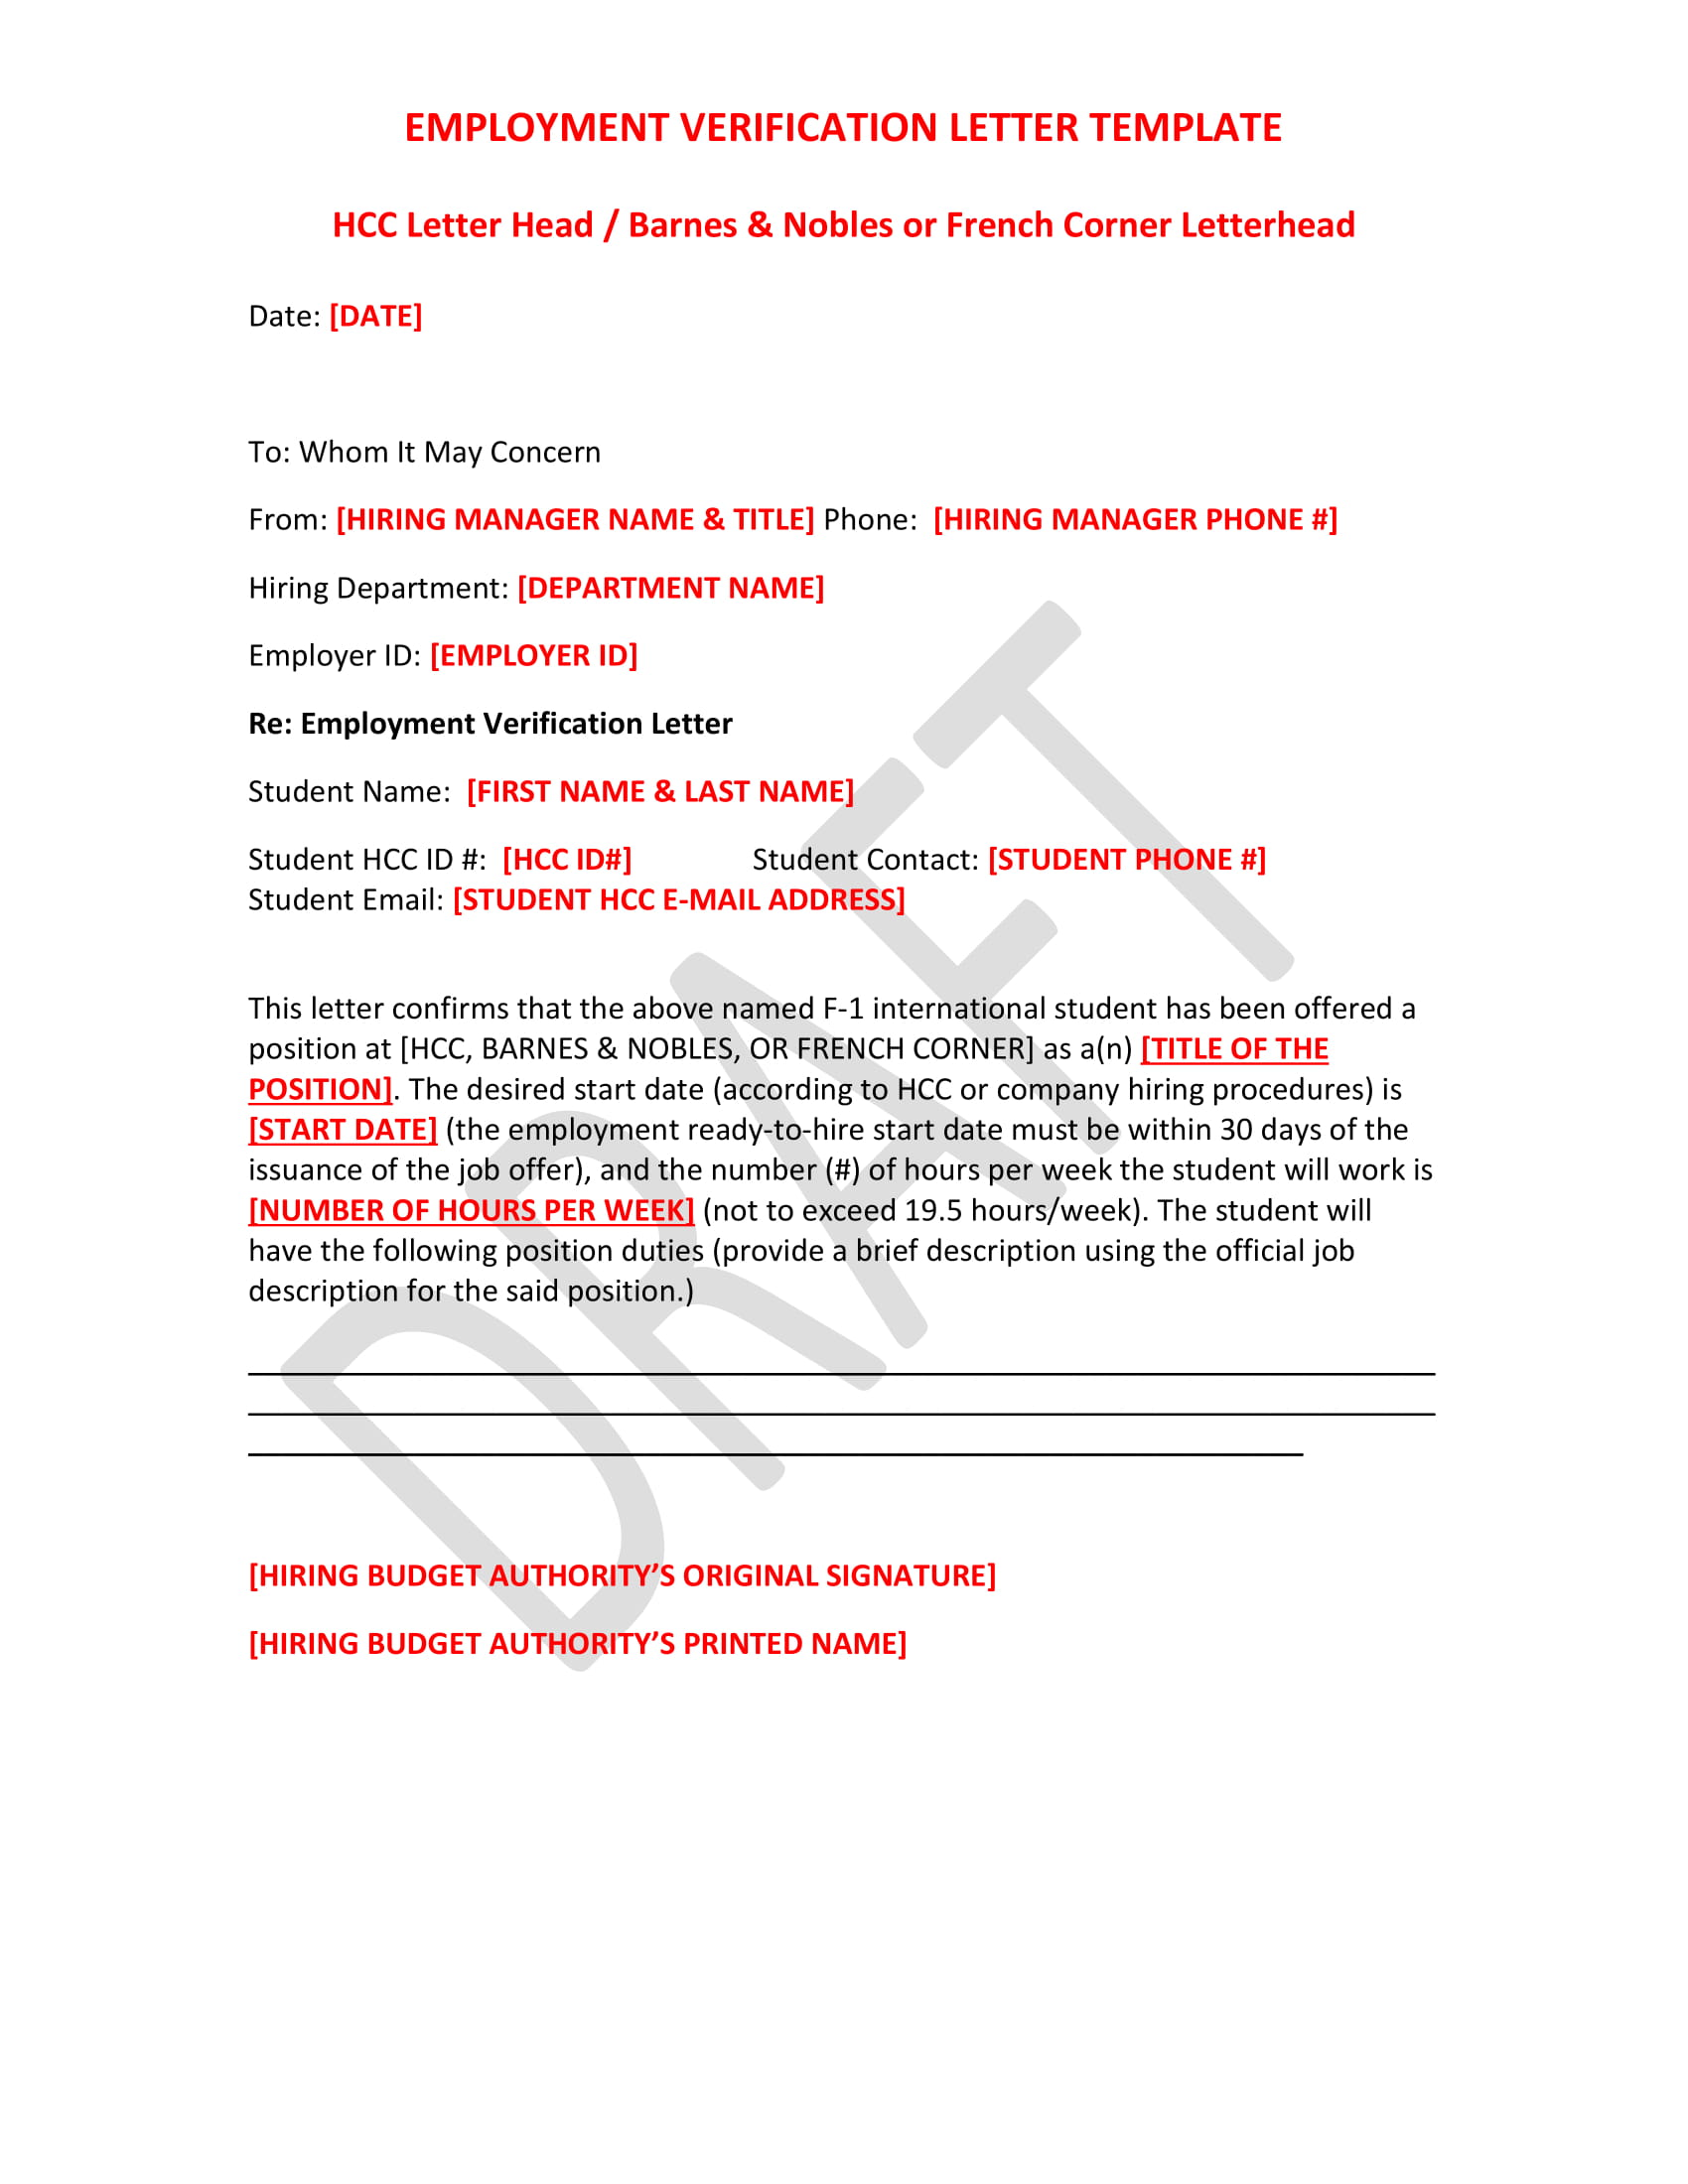 employment verification letter template example1